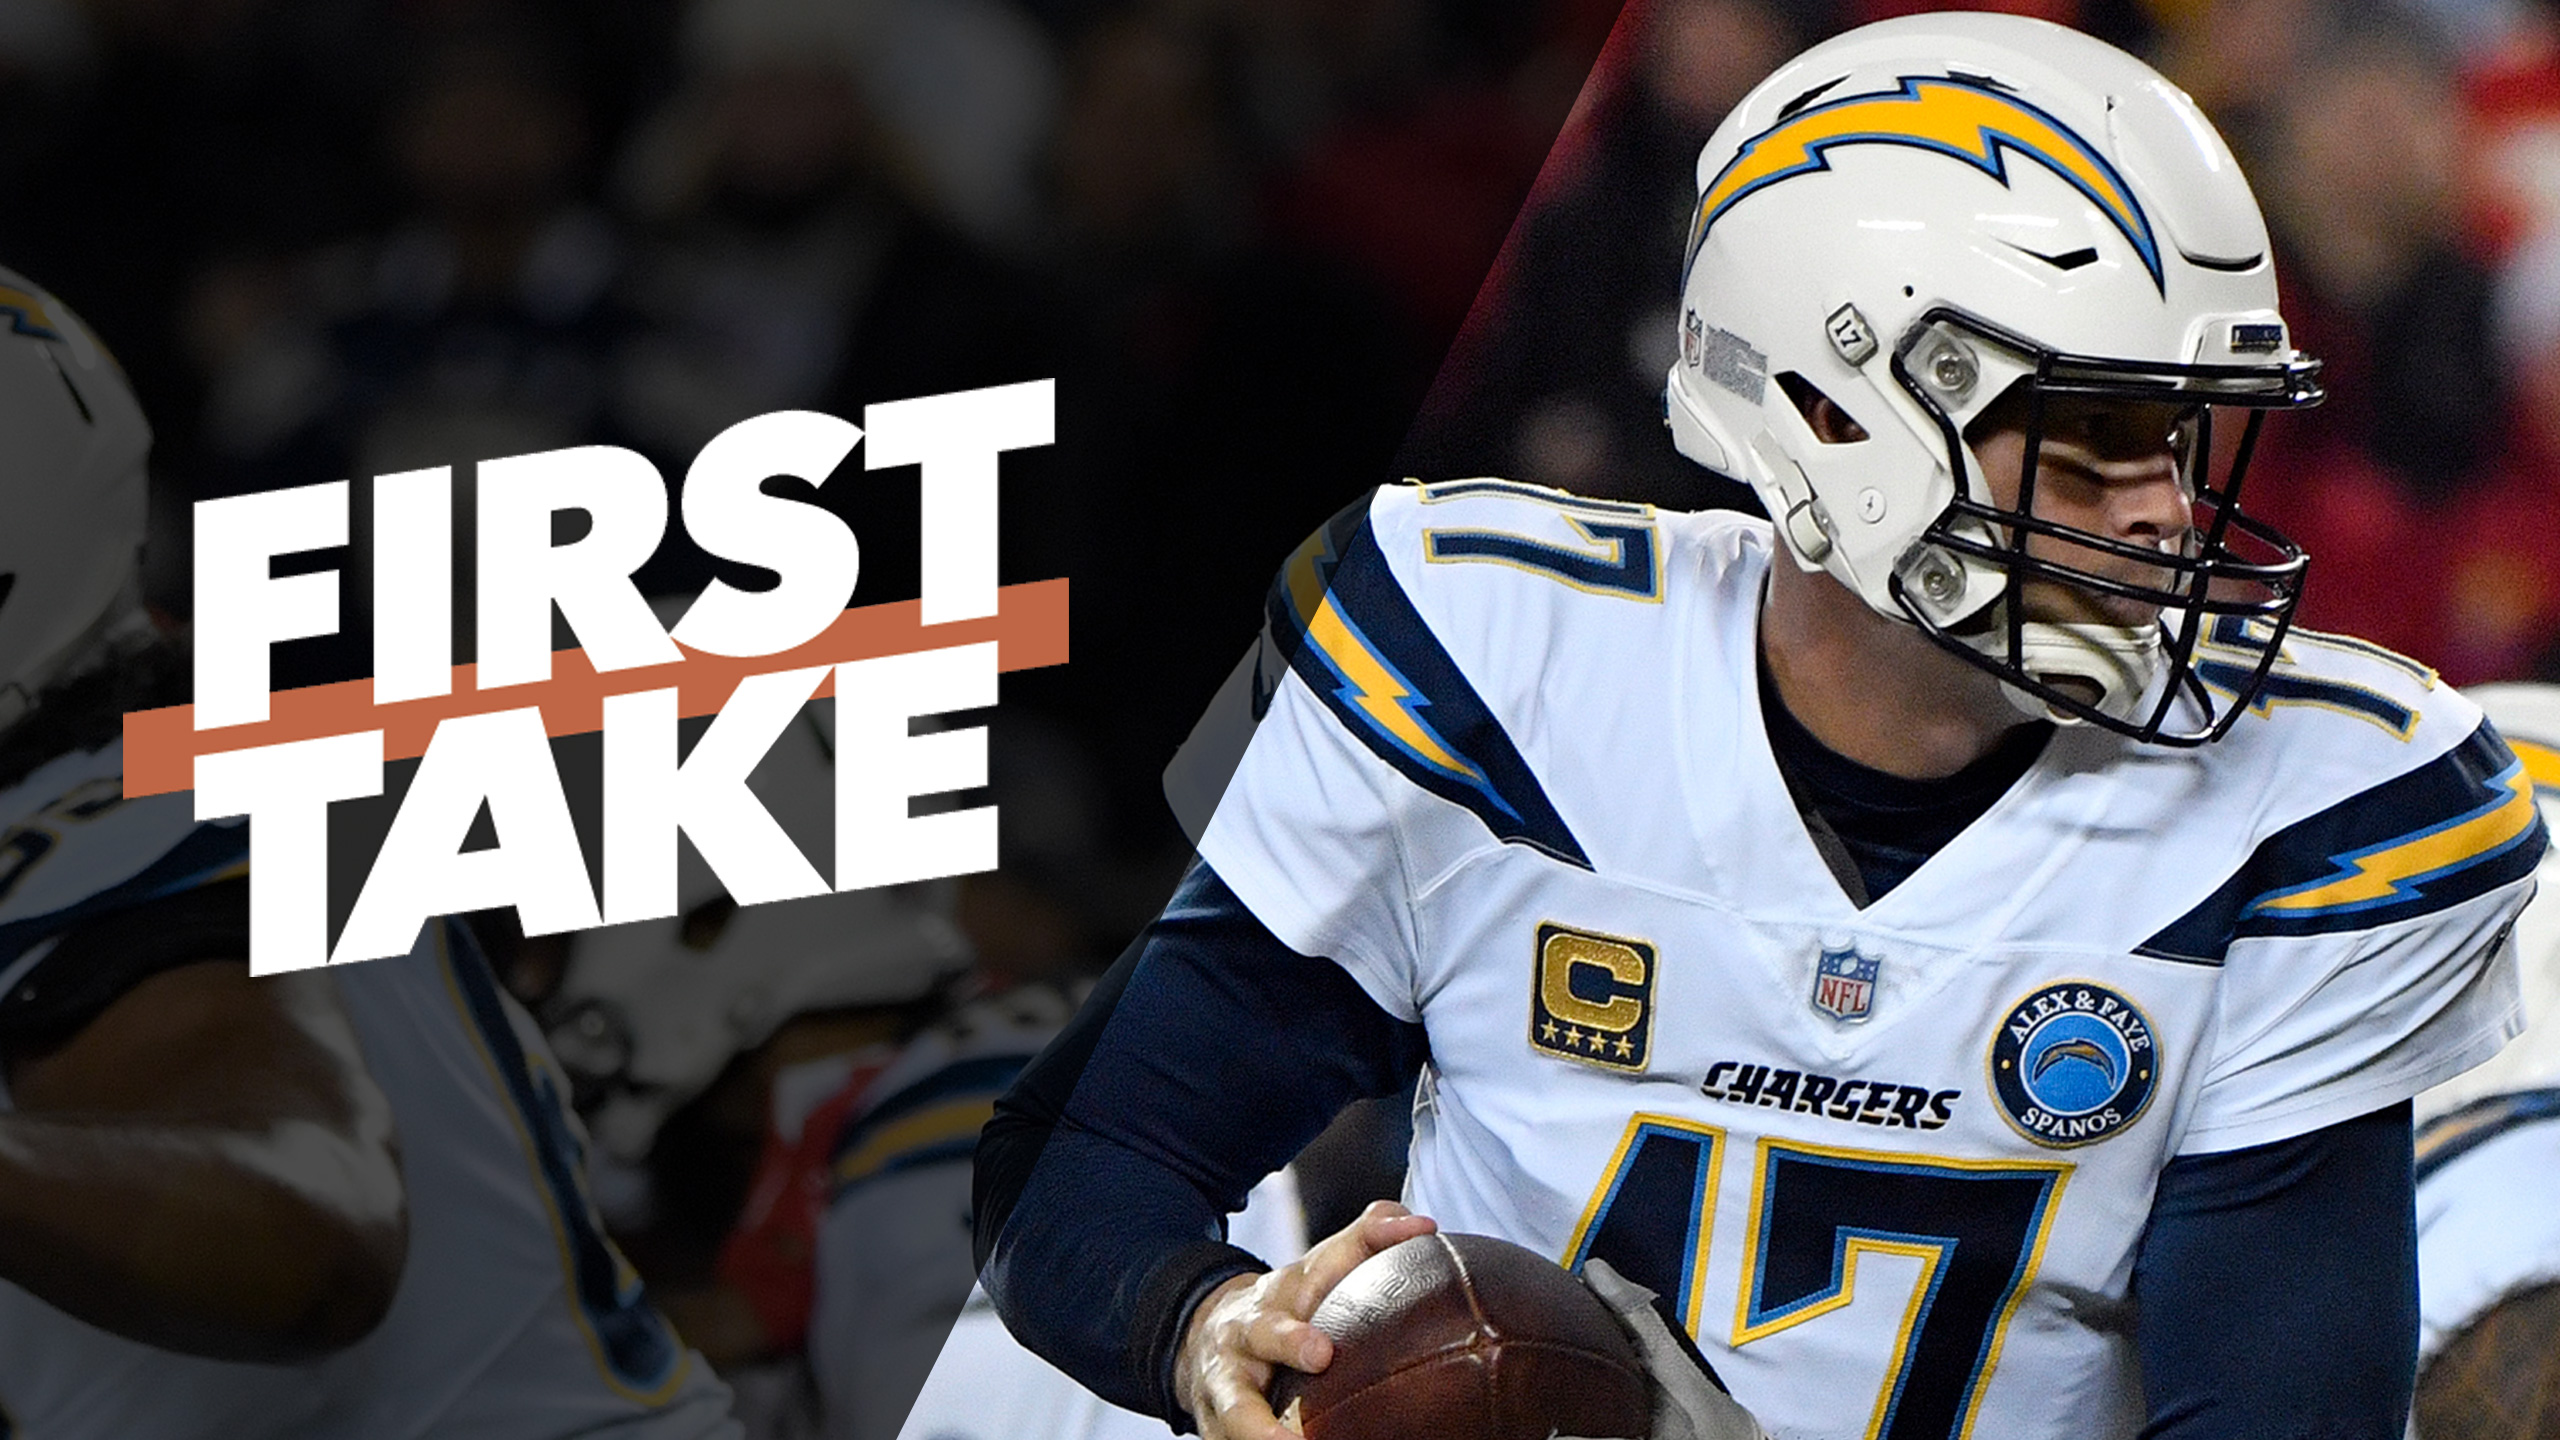 Fri, 12/14 - First Take